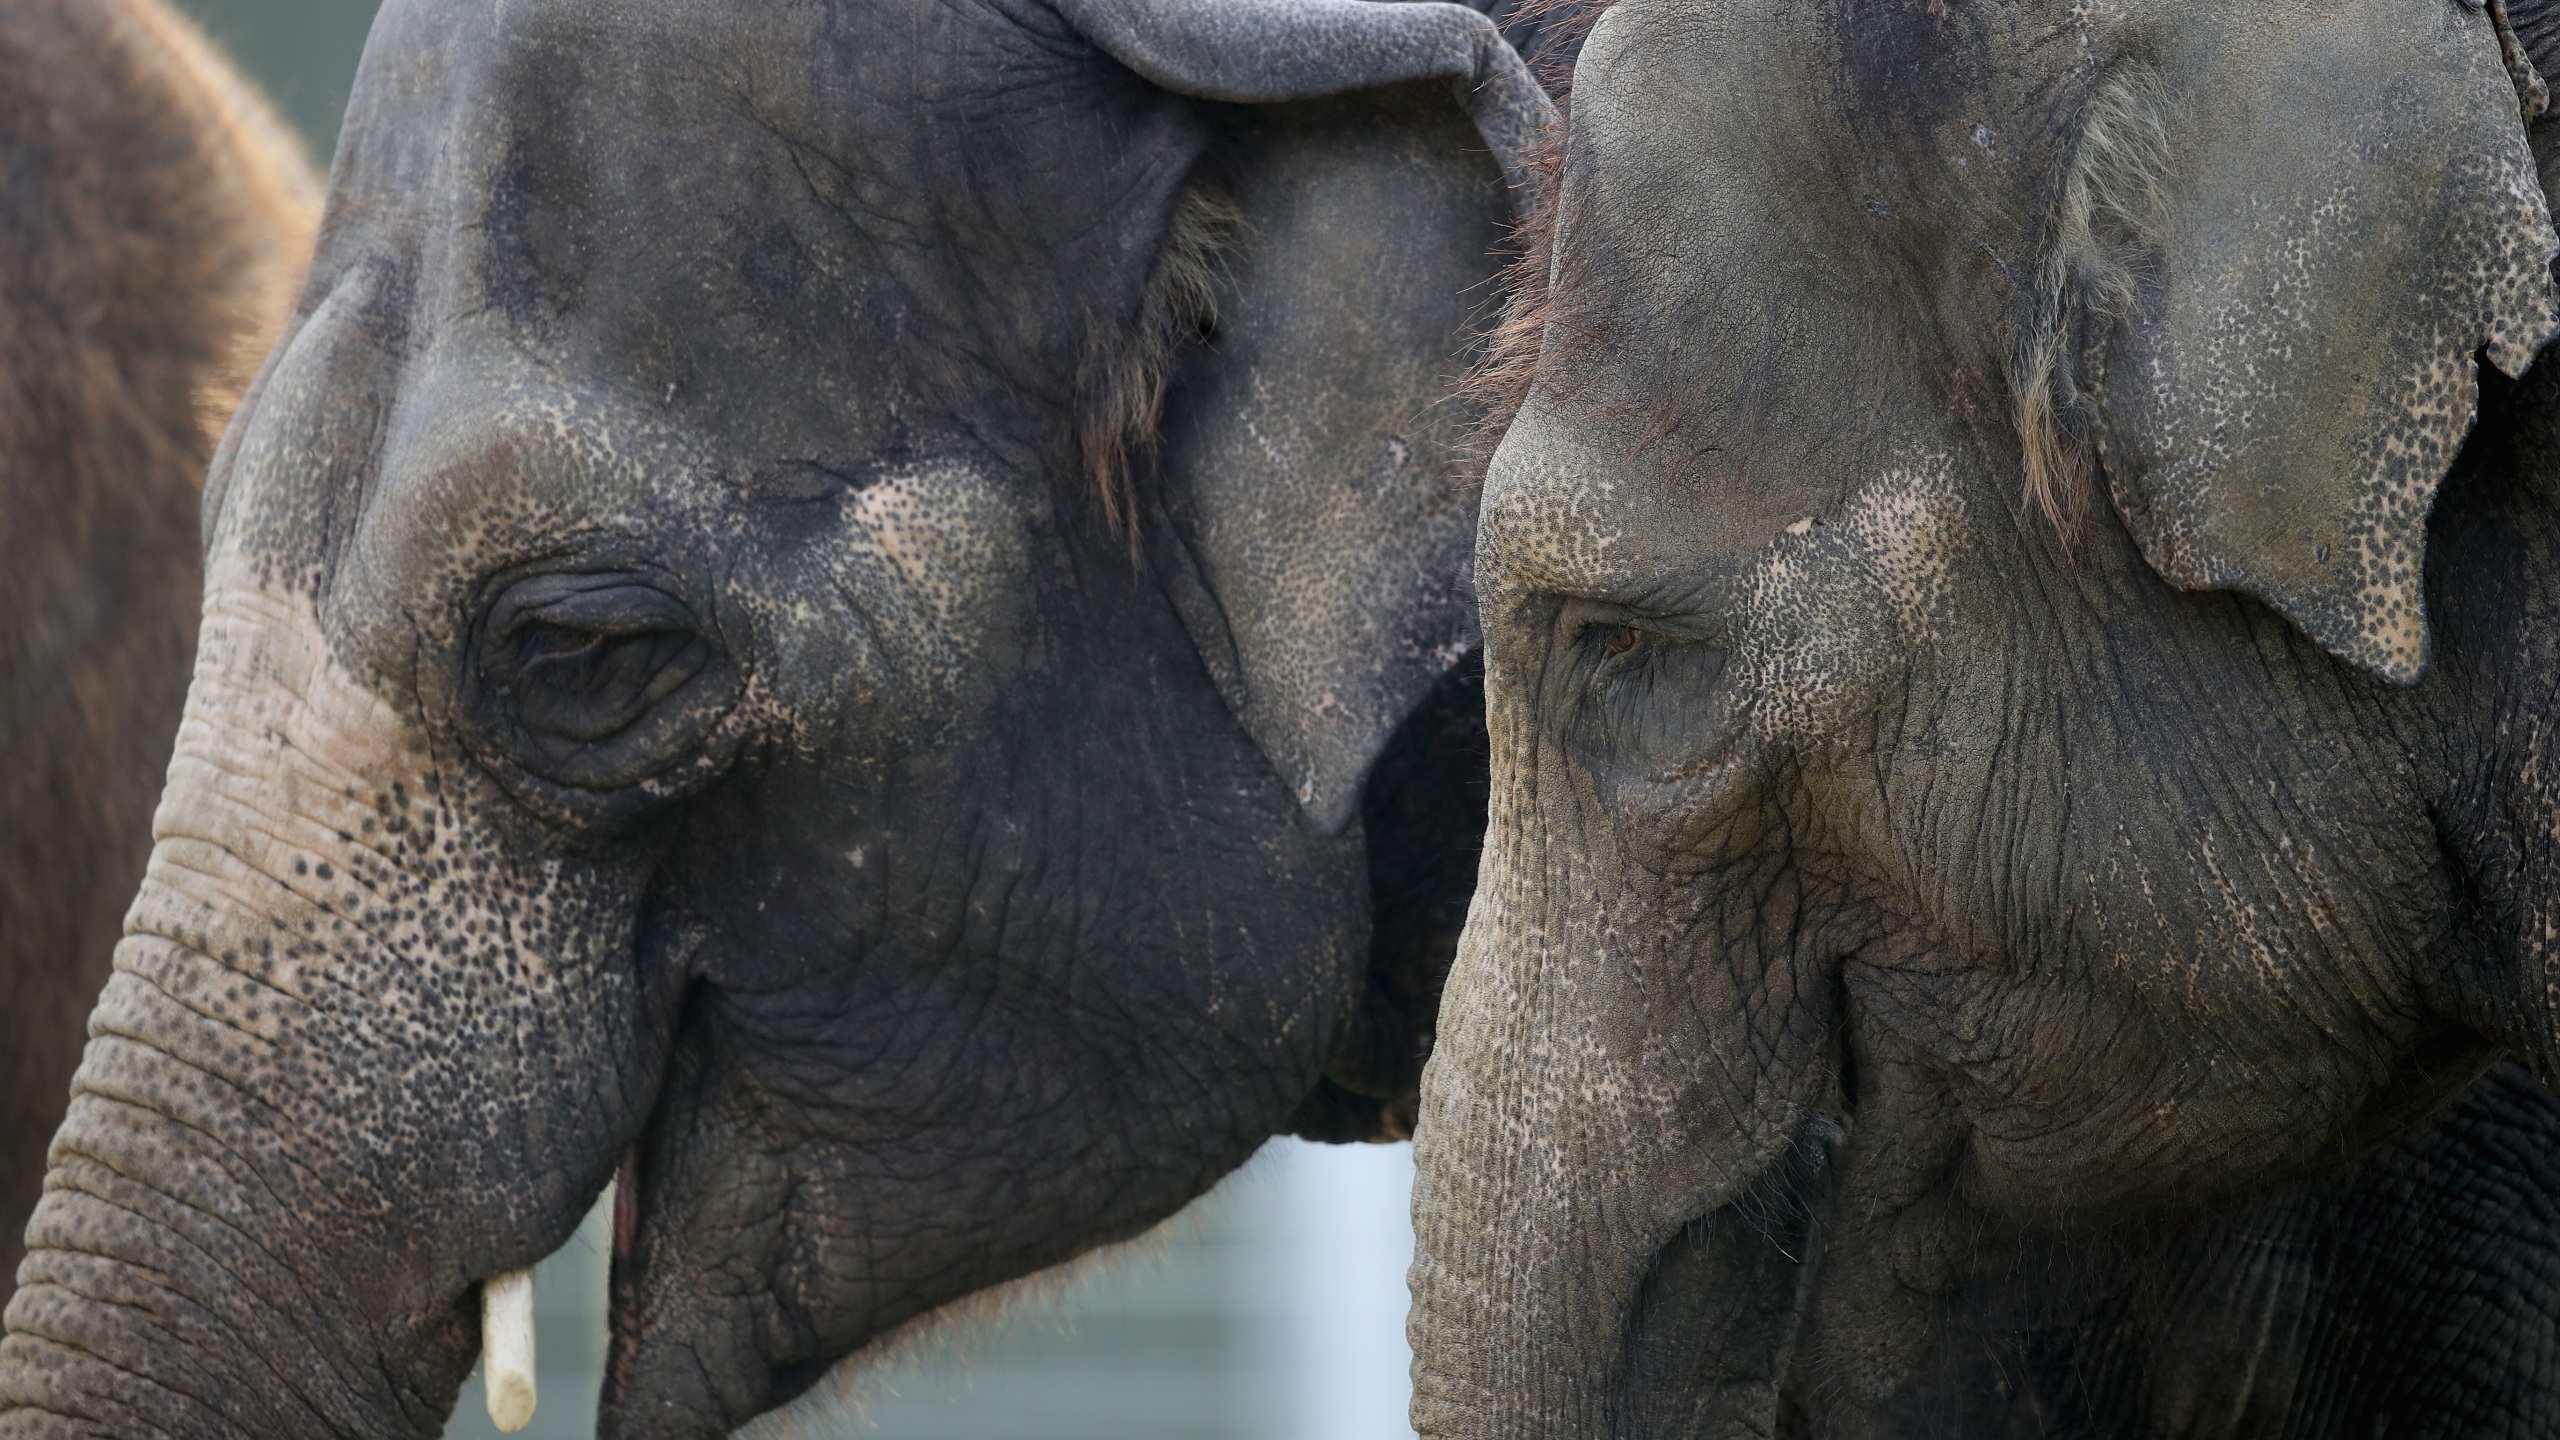 Group Files Appeal In Bid To Free Elephants From Petting Zoo